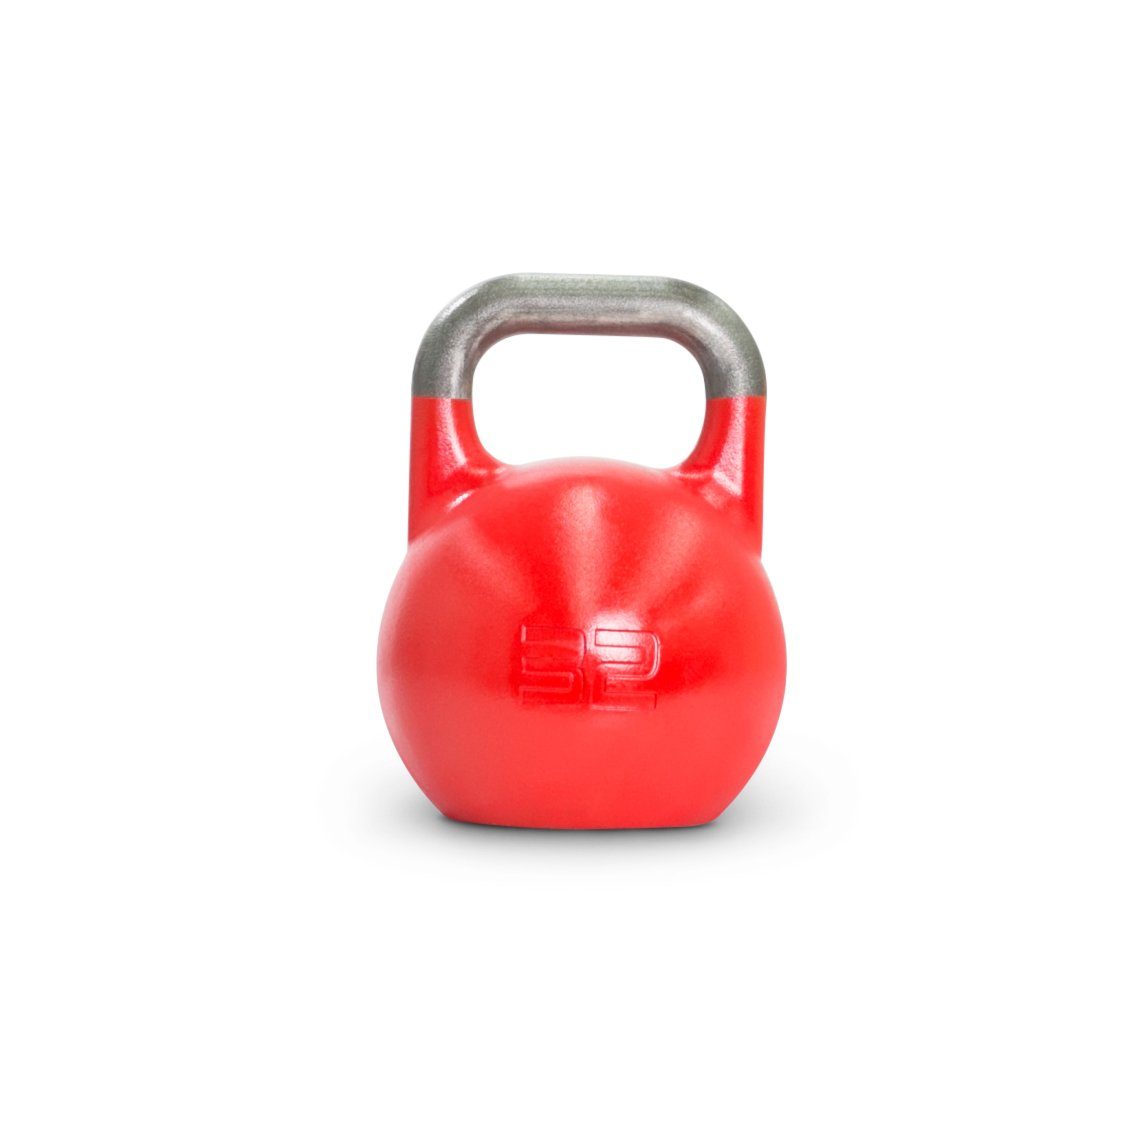 Kettlebell 24kg Professional Competition Grade: Kettlebell PRO Grade 32kg Competition Style